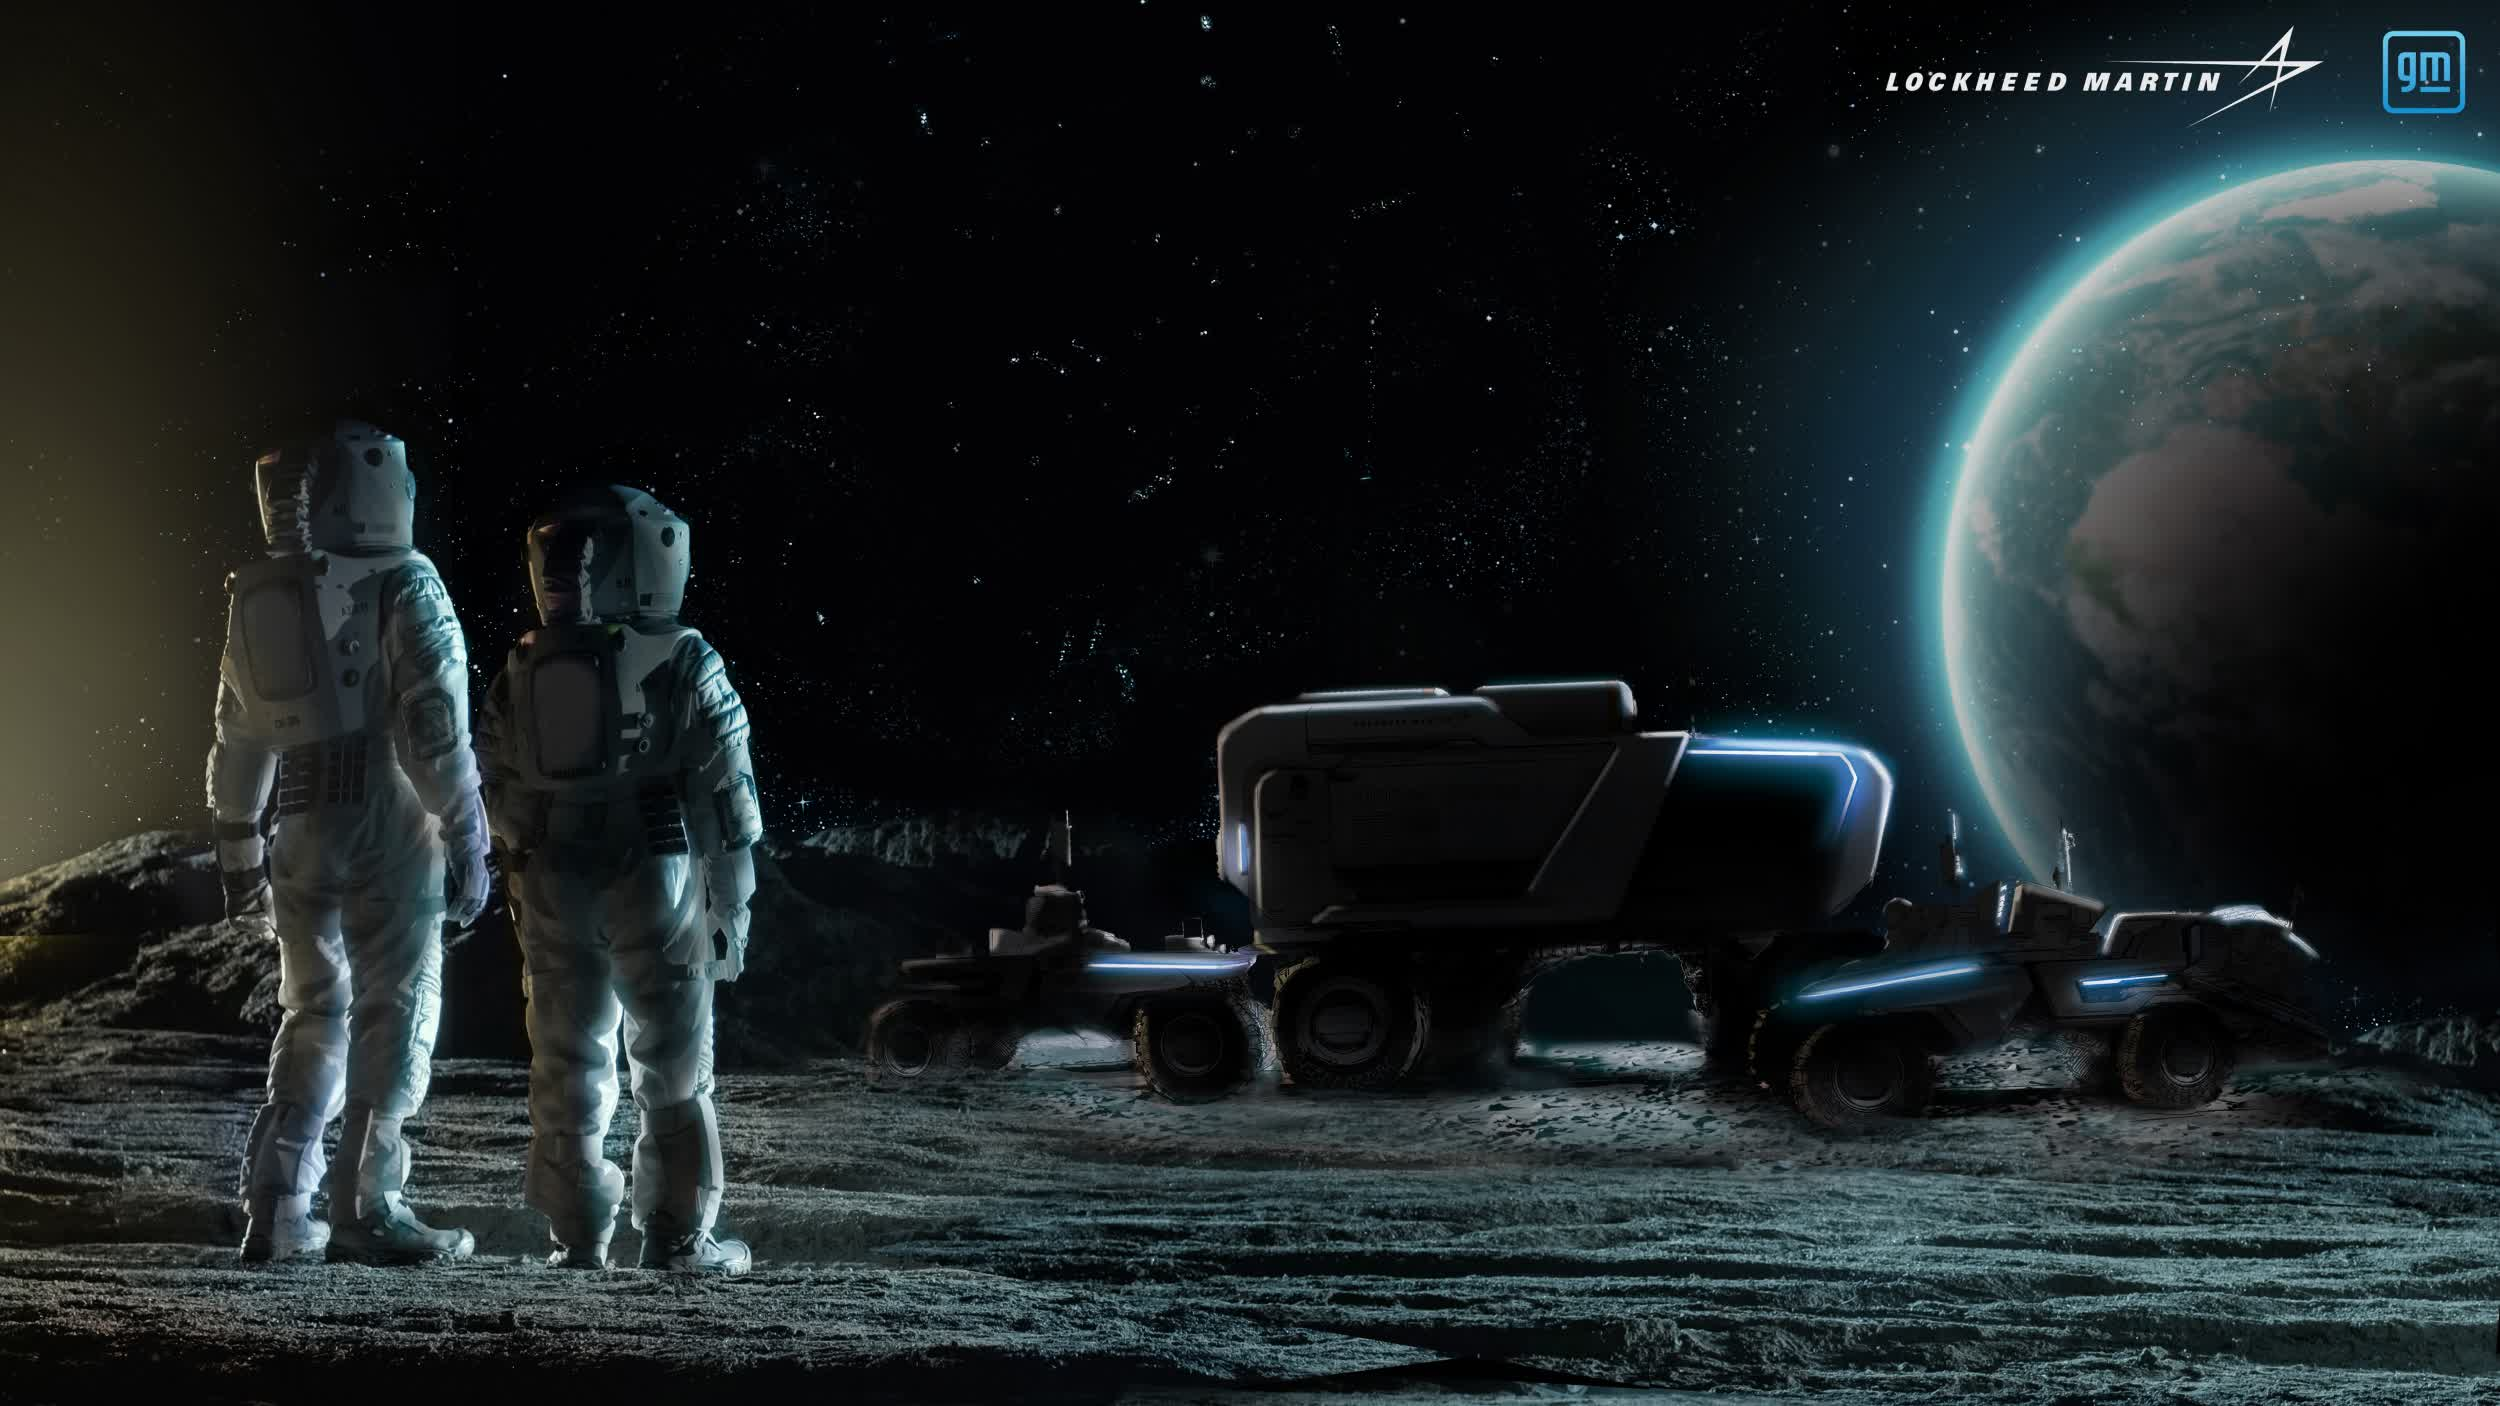 General Motors and Lockheed Martin team up to build lunar rover for NASA's return to the Moon